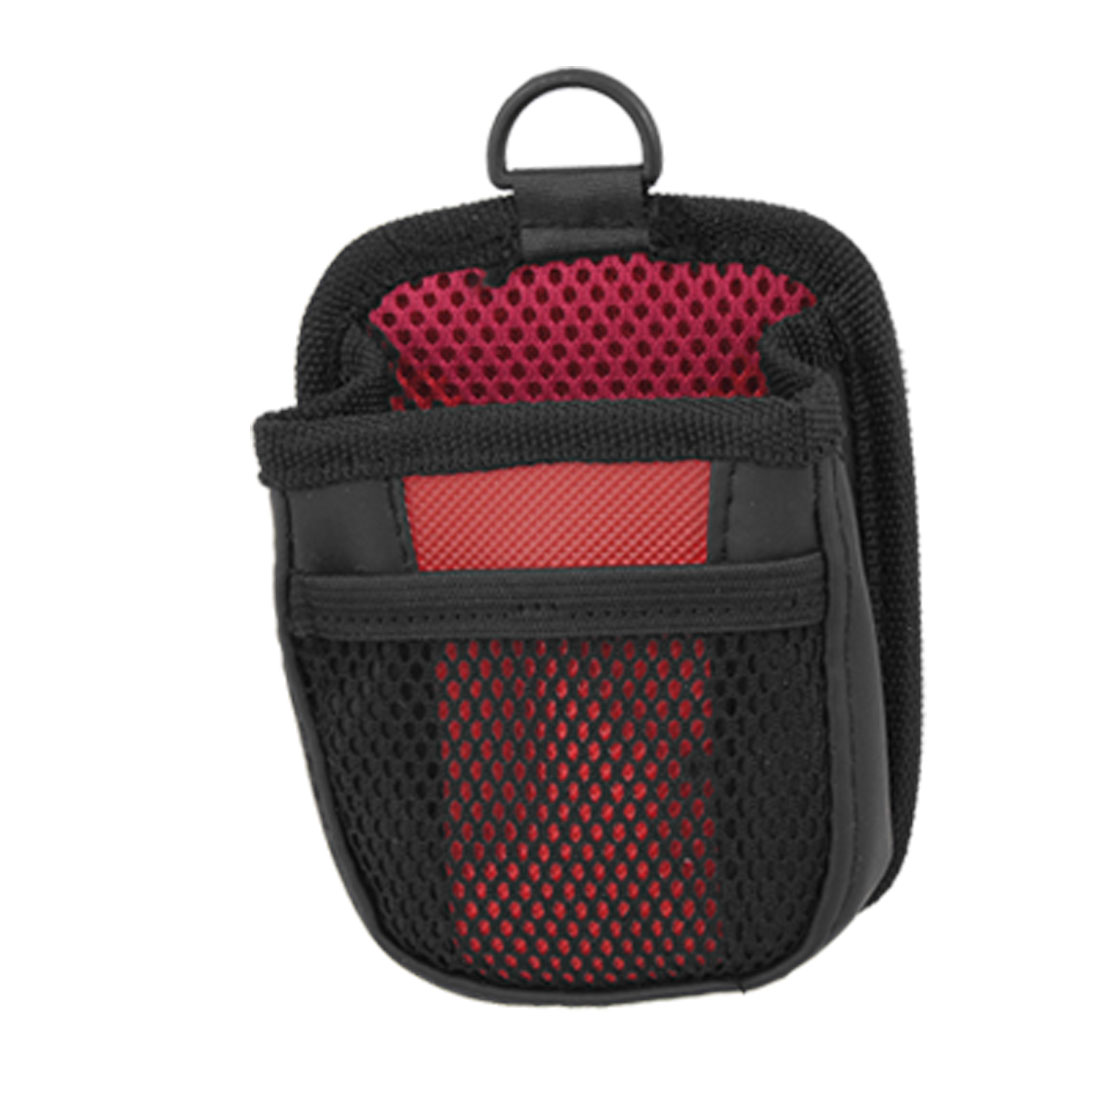 Car Auto Cell Phone Black Red Mesh Holder Pouch Bag